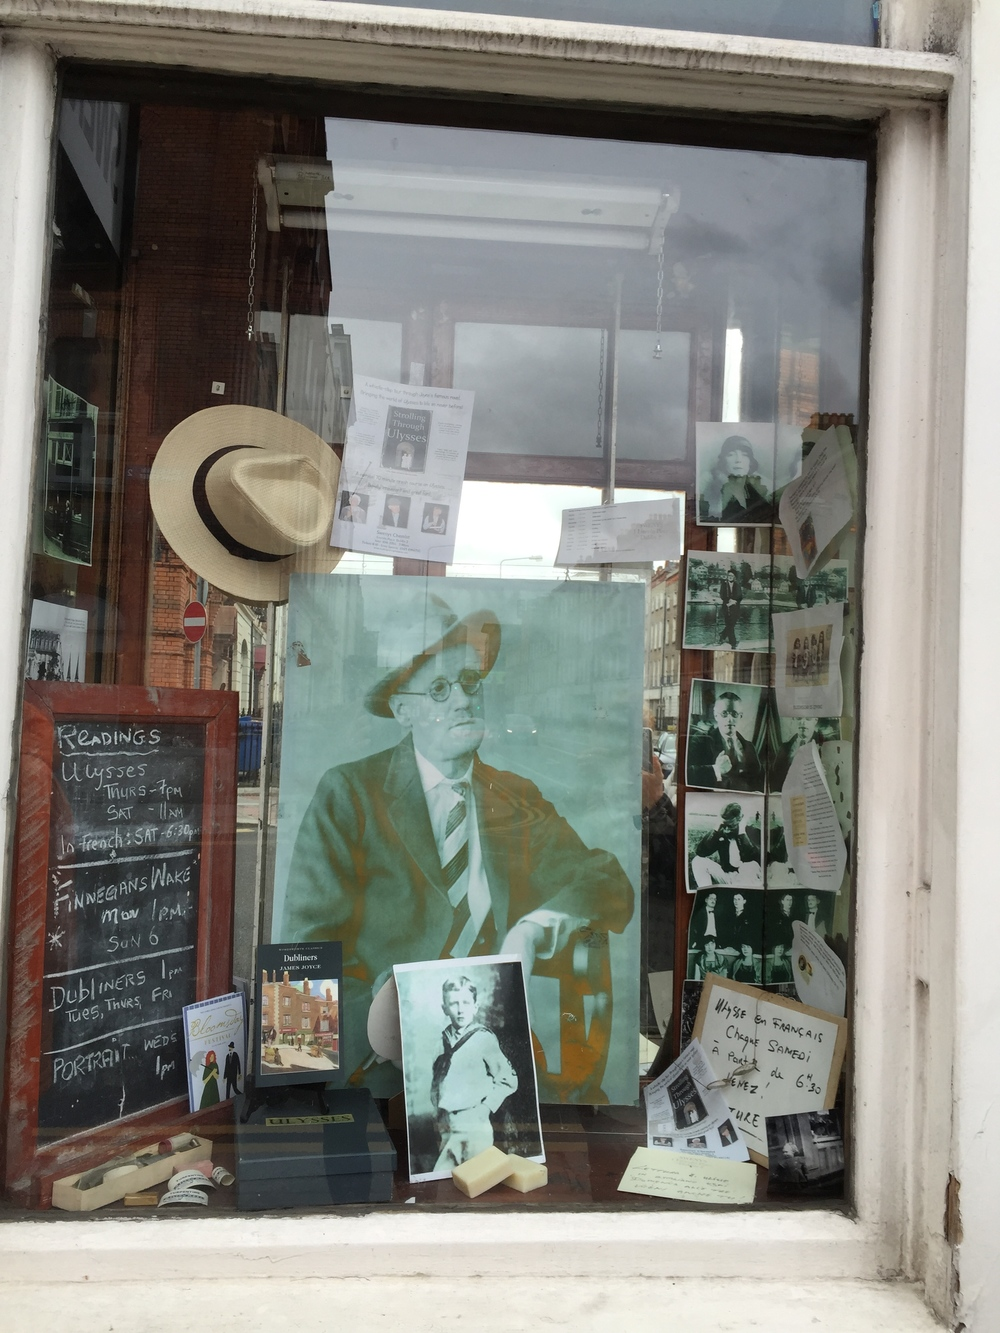 That's right, James Joyce in the window of F.W. Sweny & Co. Ltd. Dublin, Ireland